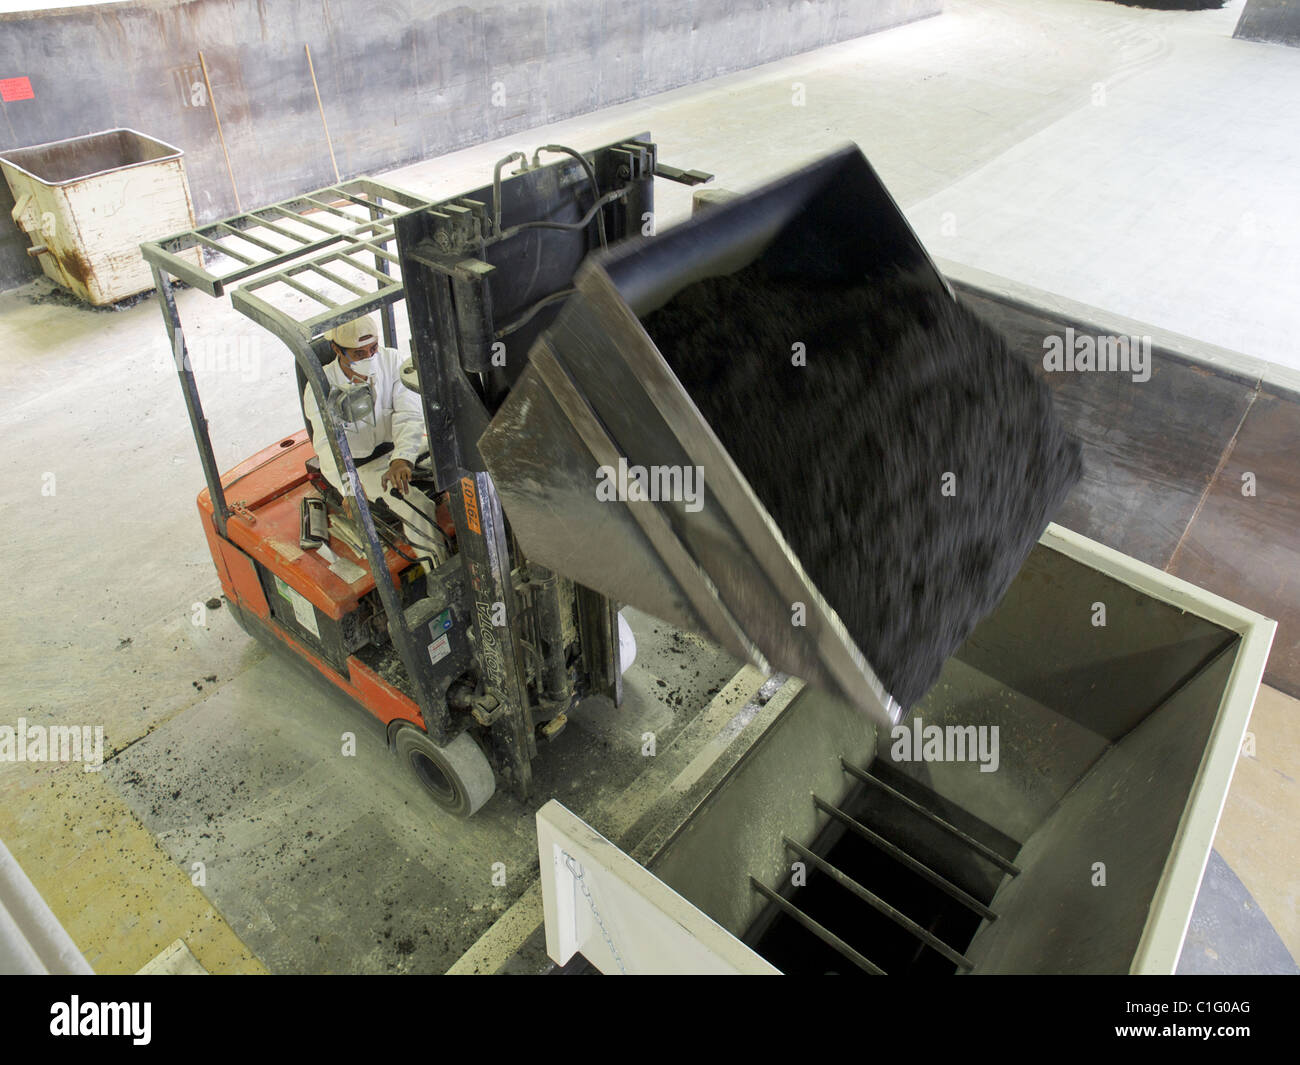 Man using special forklift truck with scoop inside factory. Assendelft, the Netherlands - Stock Image